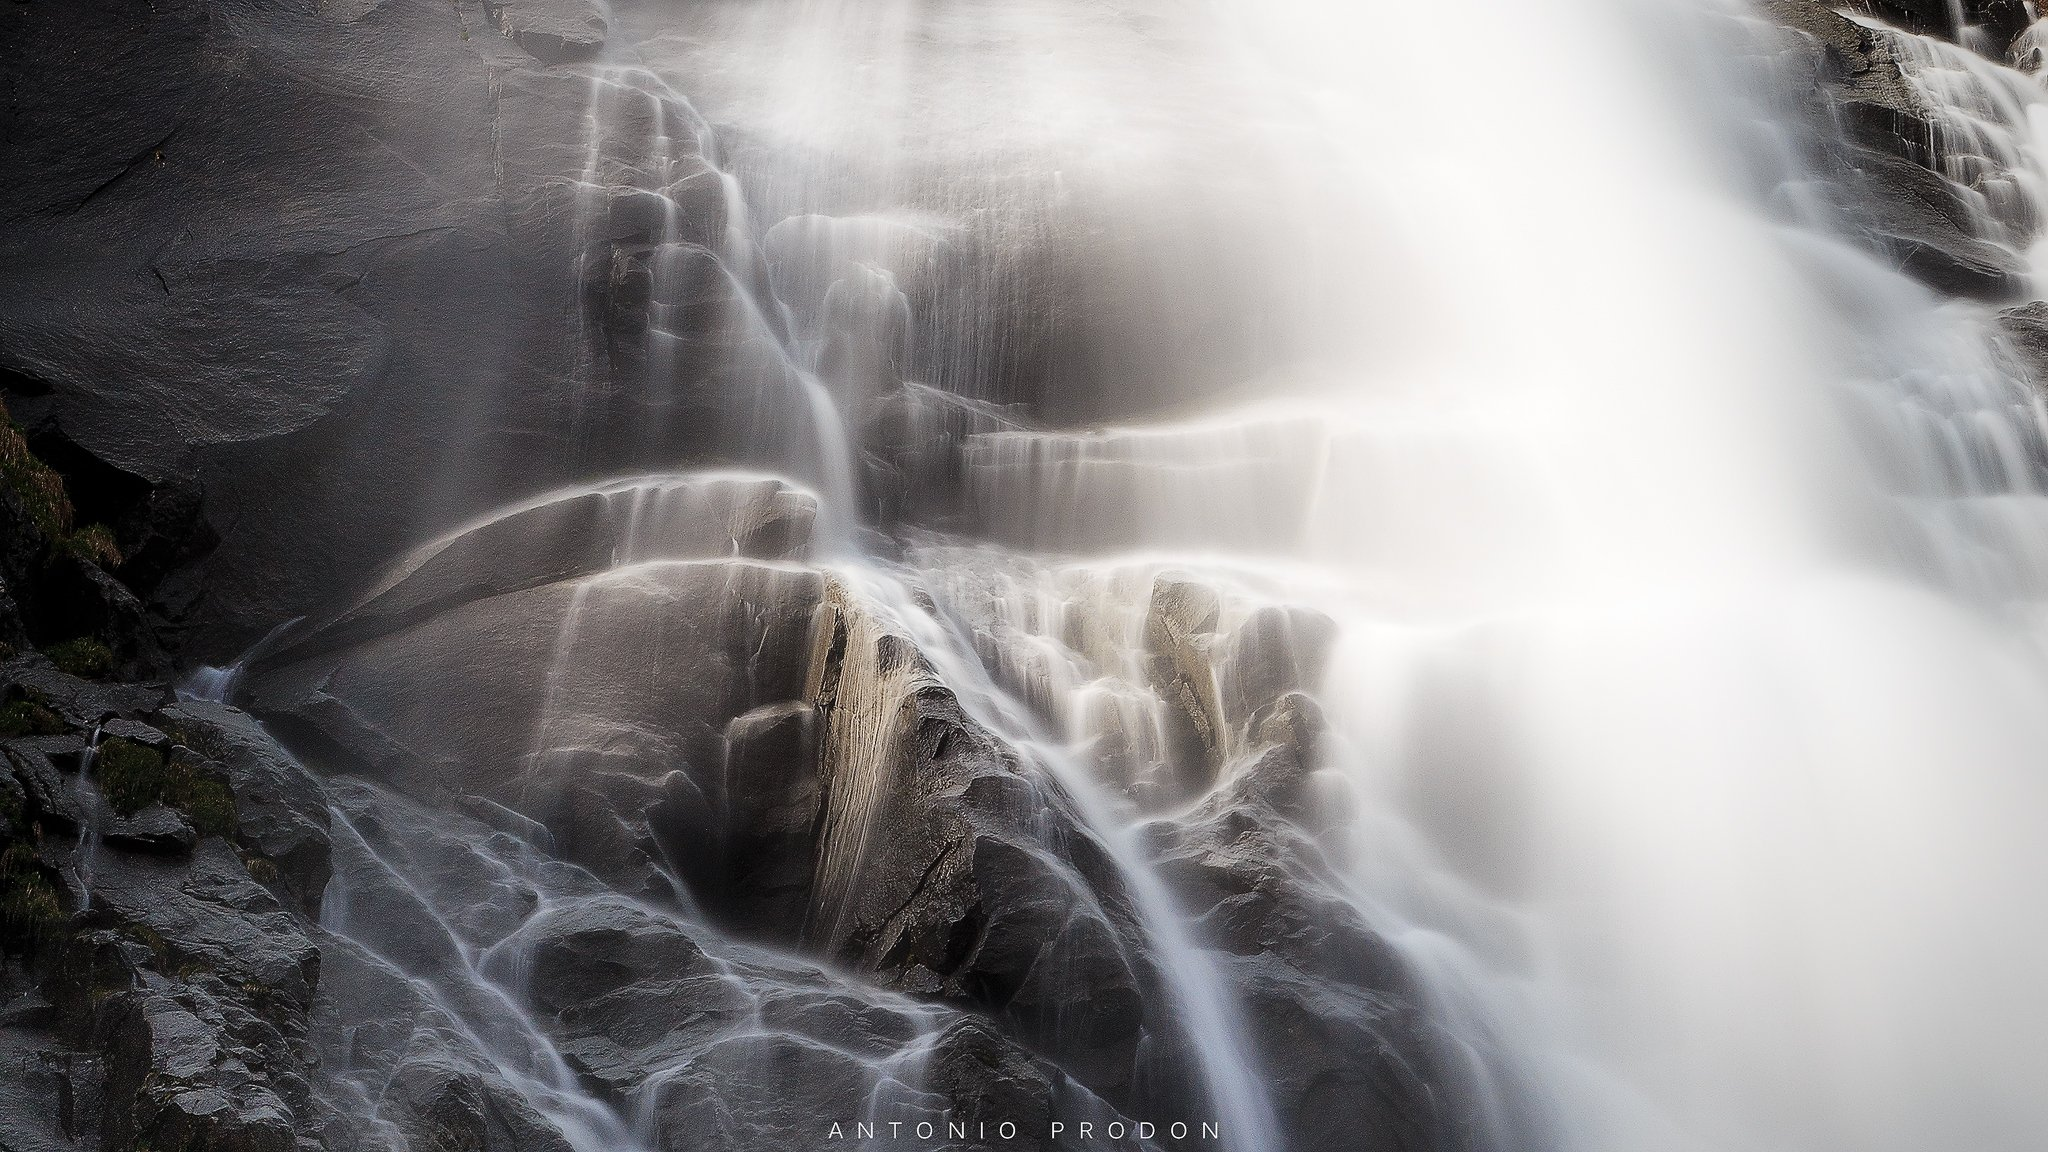 waterfal; nardis; cascate; clouds; long exposure; canon; tripod; water; rocks; nature; beautiful; incredible; grass; sun; rays; drops; silk; silky; manfrotto; reflections; texture; flow, Prodon Antonio